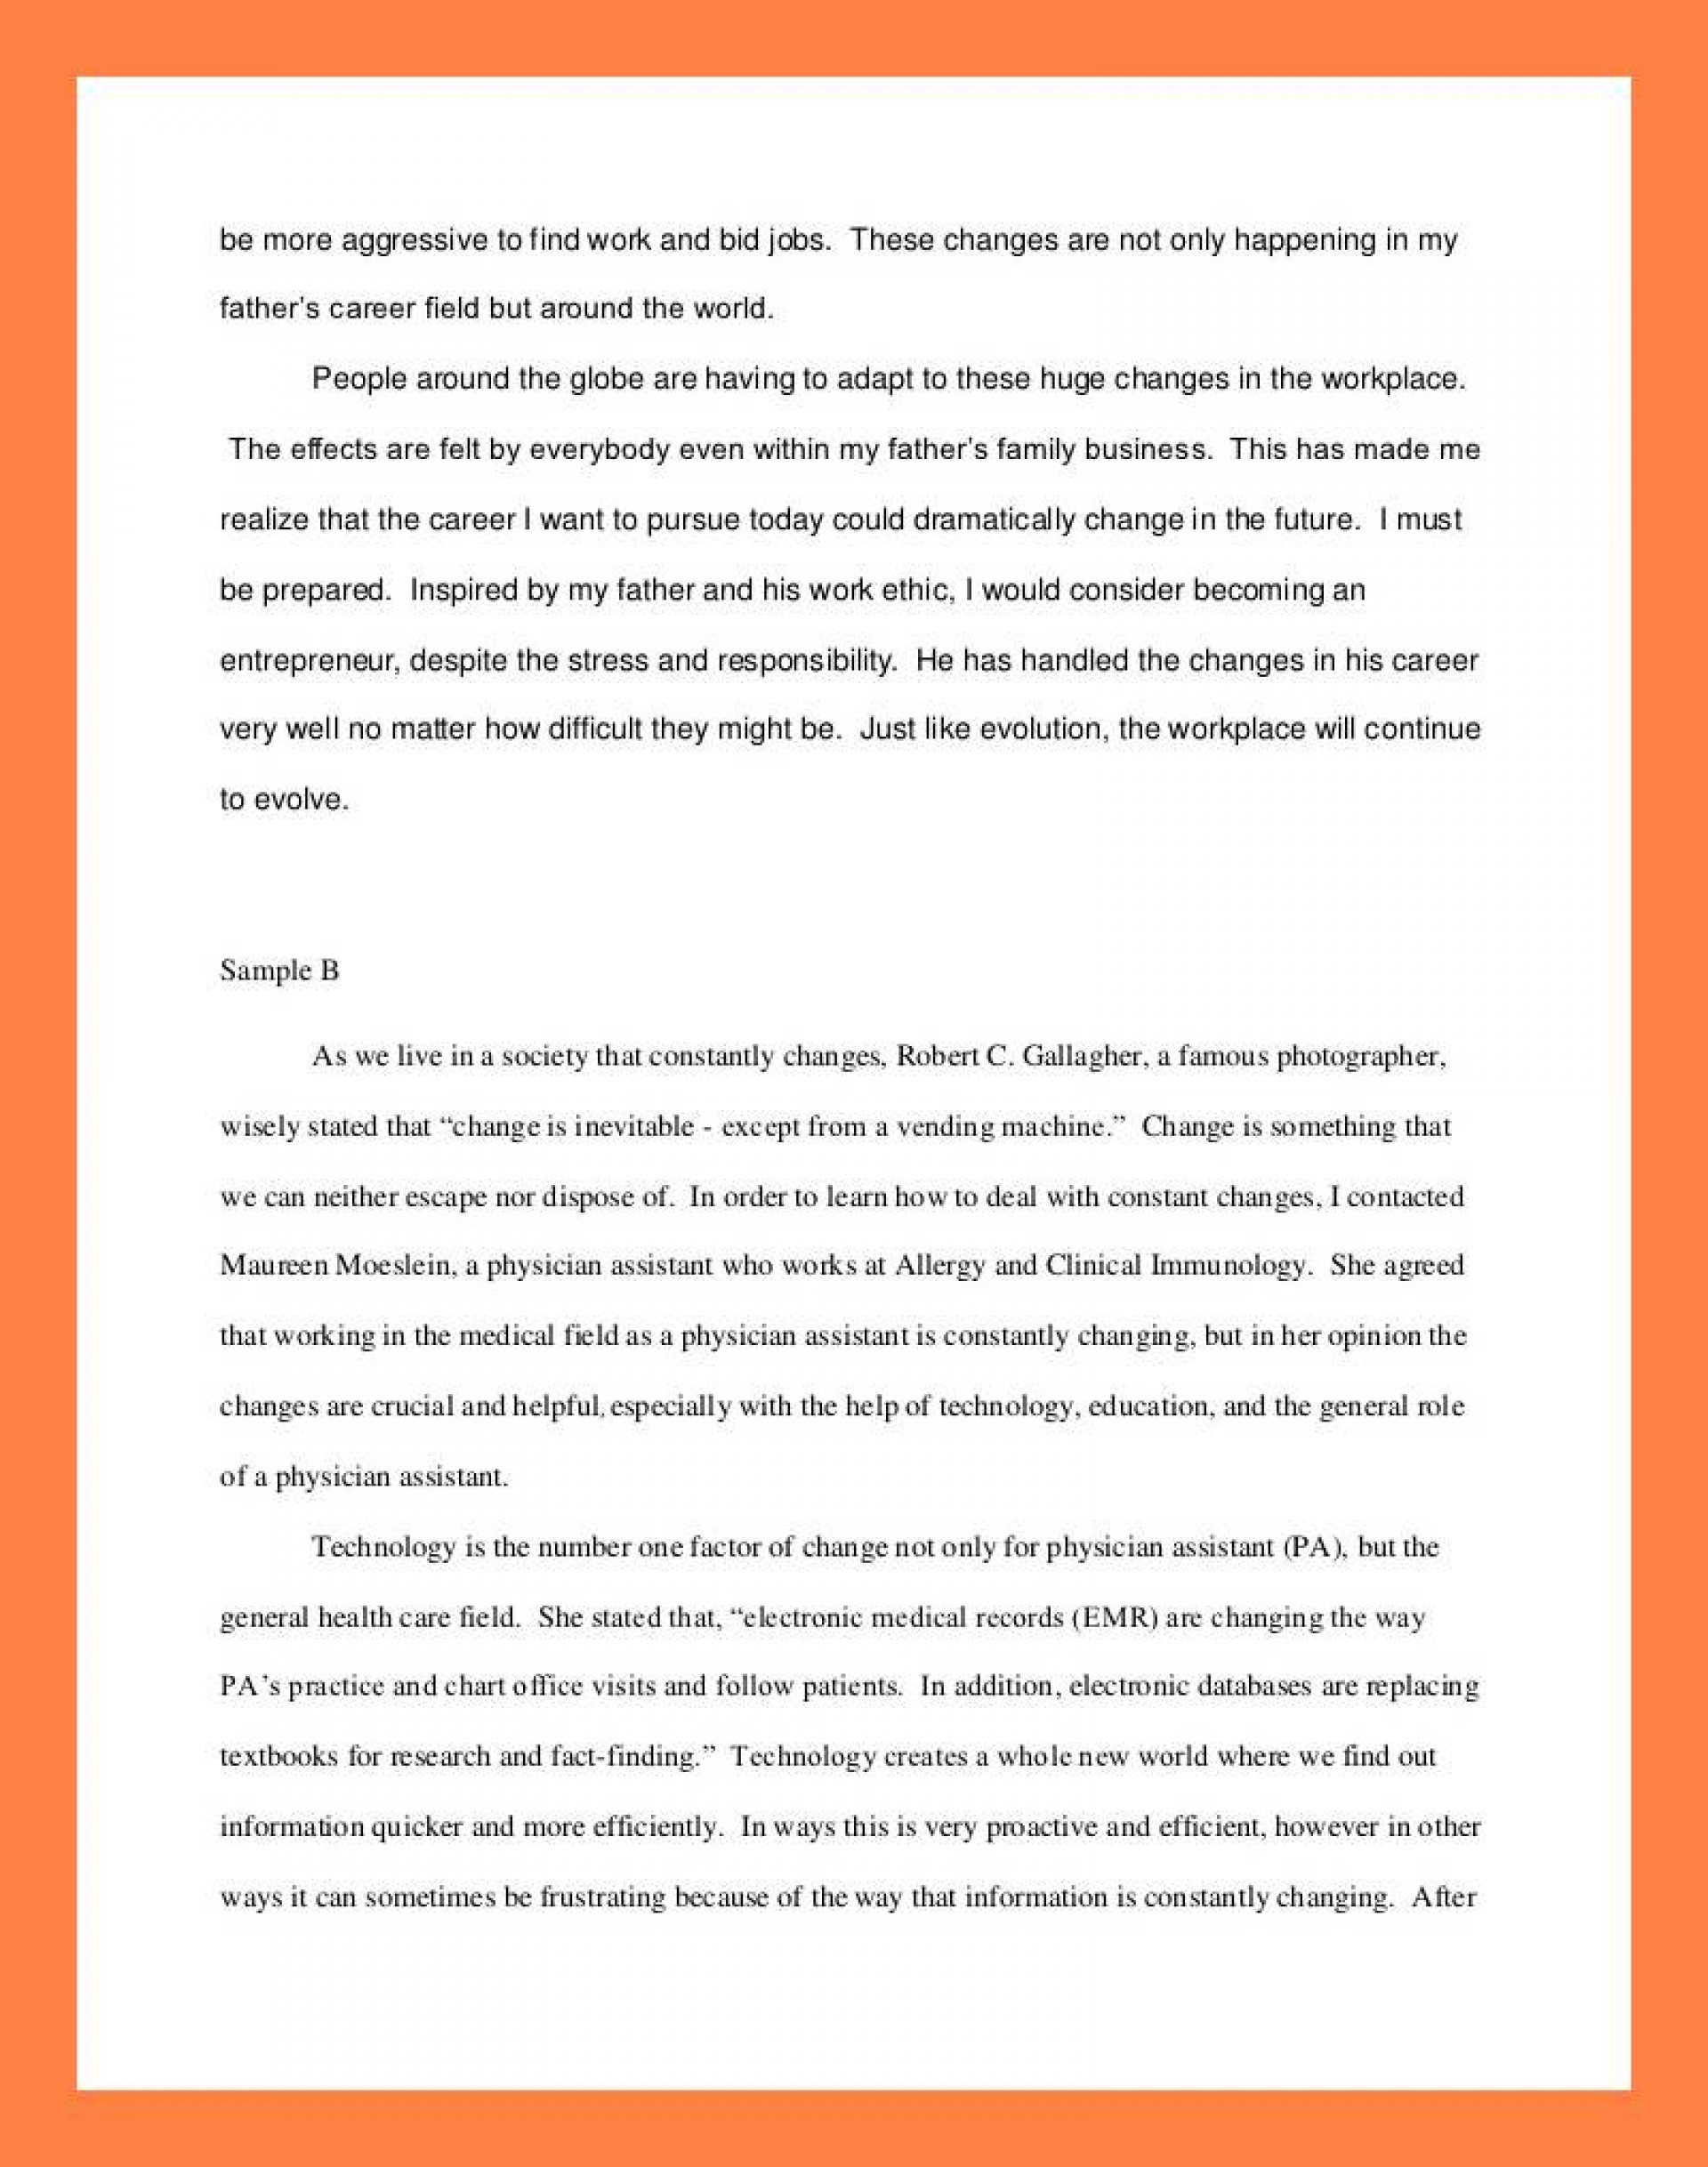 007 Interview Essay Examples Of Student Reflections Example Formidable Free Sample 1920